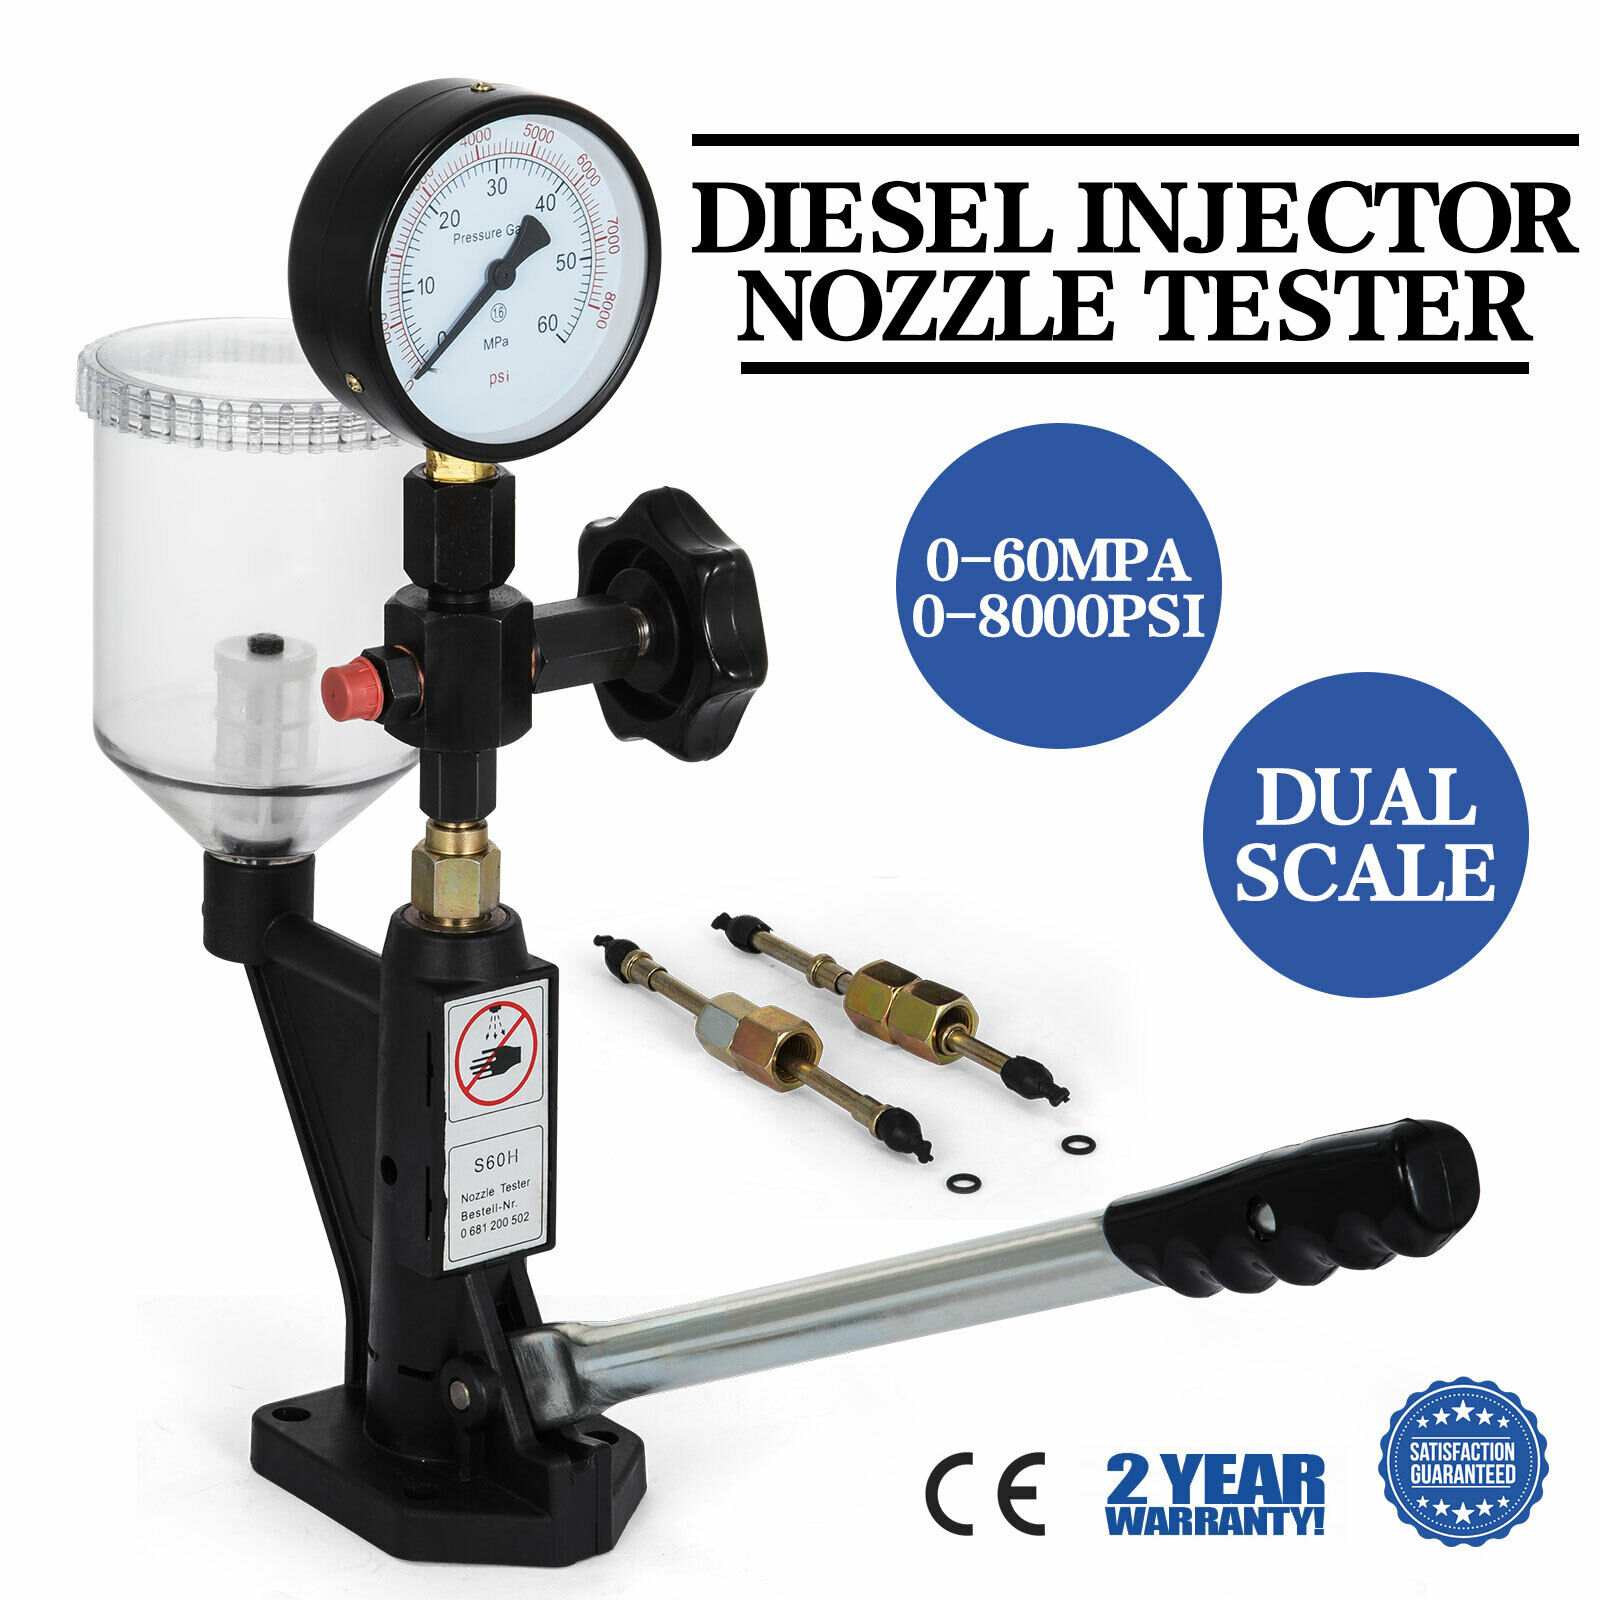 600-8000 PSI BAR Diesel Pop Pressure Tester Injector Nozzle Tester Dual Scale